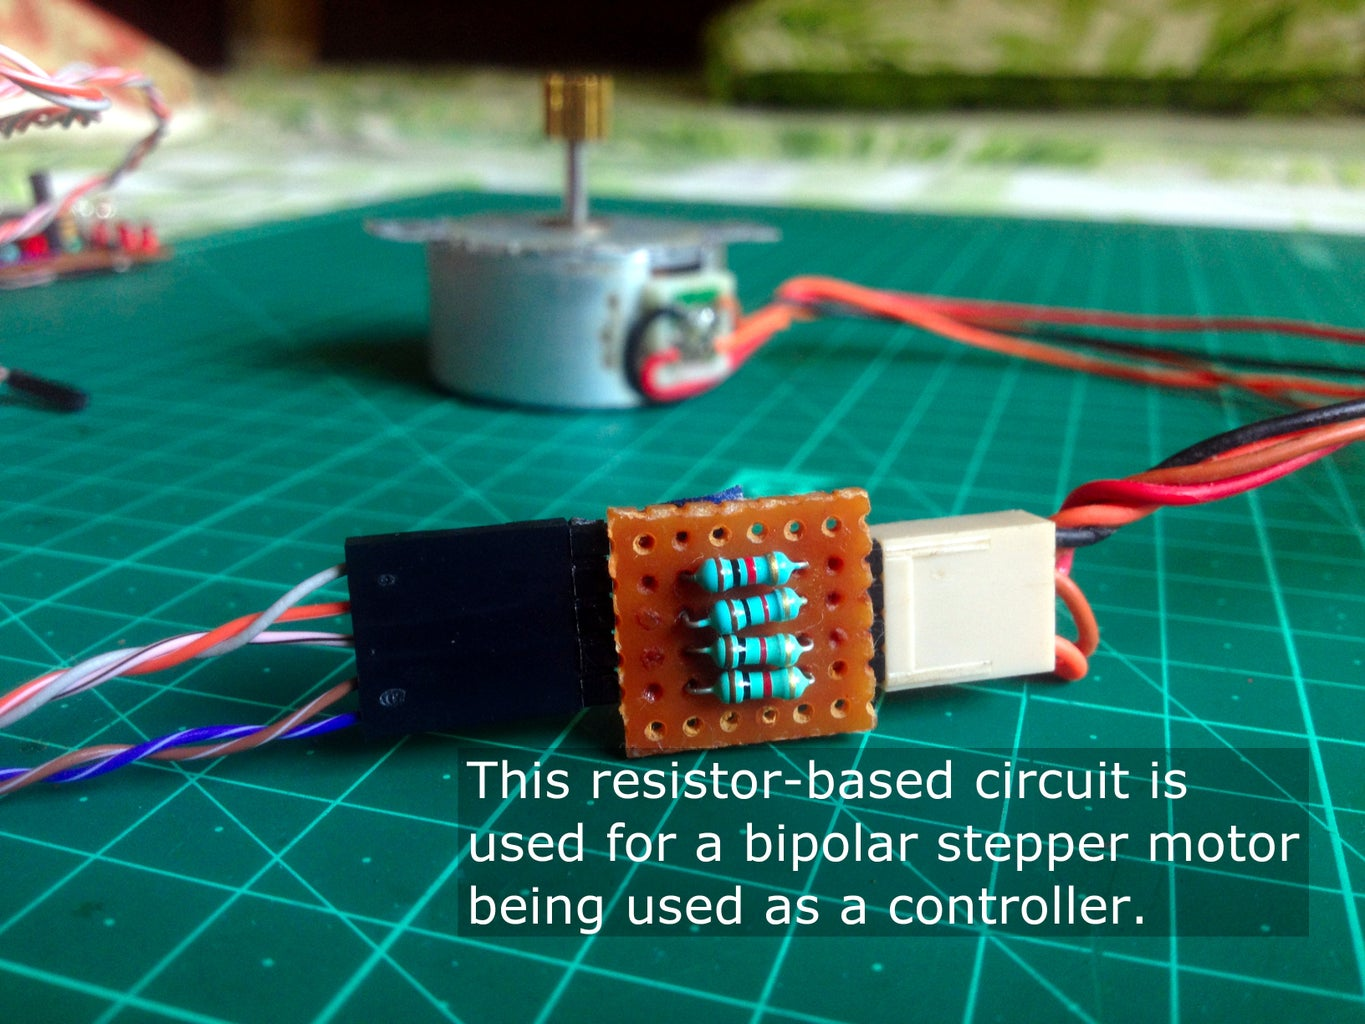 Connect the Controller Stepper Motor to the Amplifier